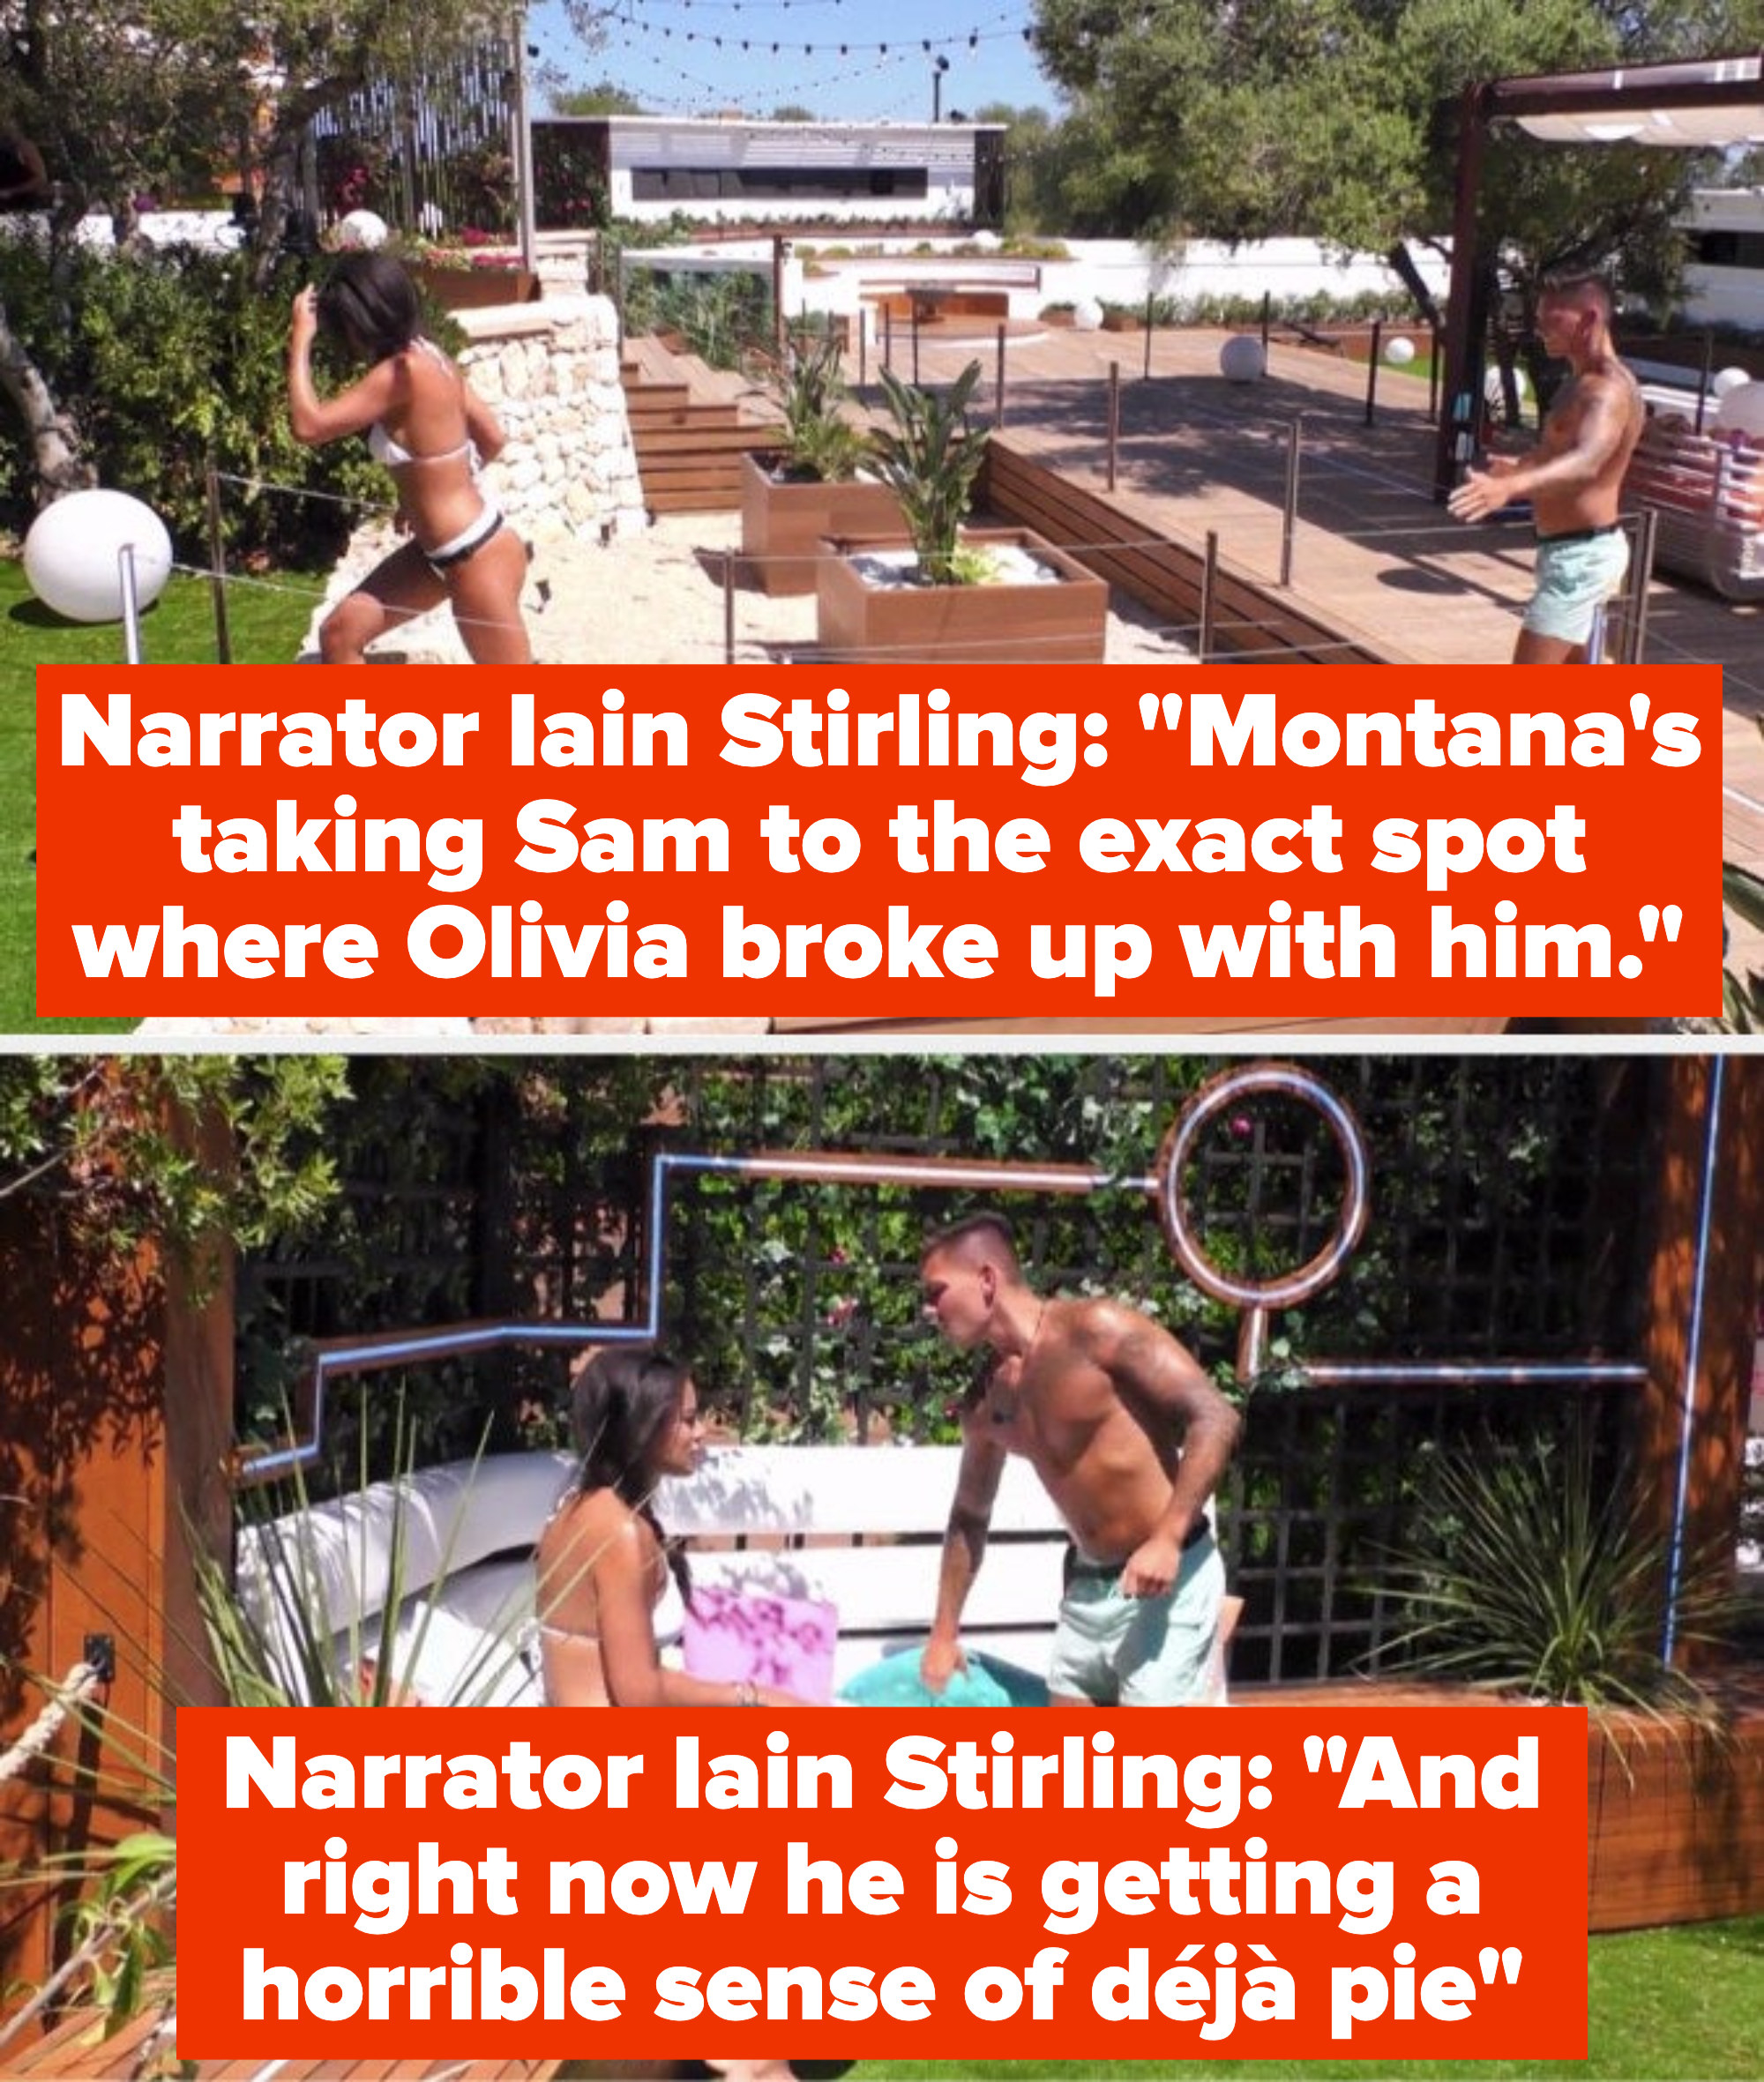 """The narrator Iain Stirling says, """"Montana's taking Sam to the exact spot where Olivia broke up with him, and right now he is getting a horrible sense of déjà pie"""""""